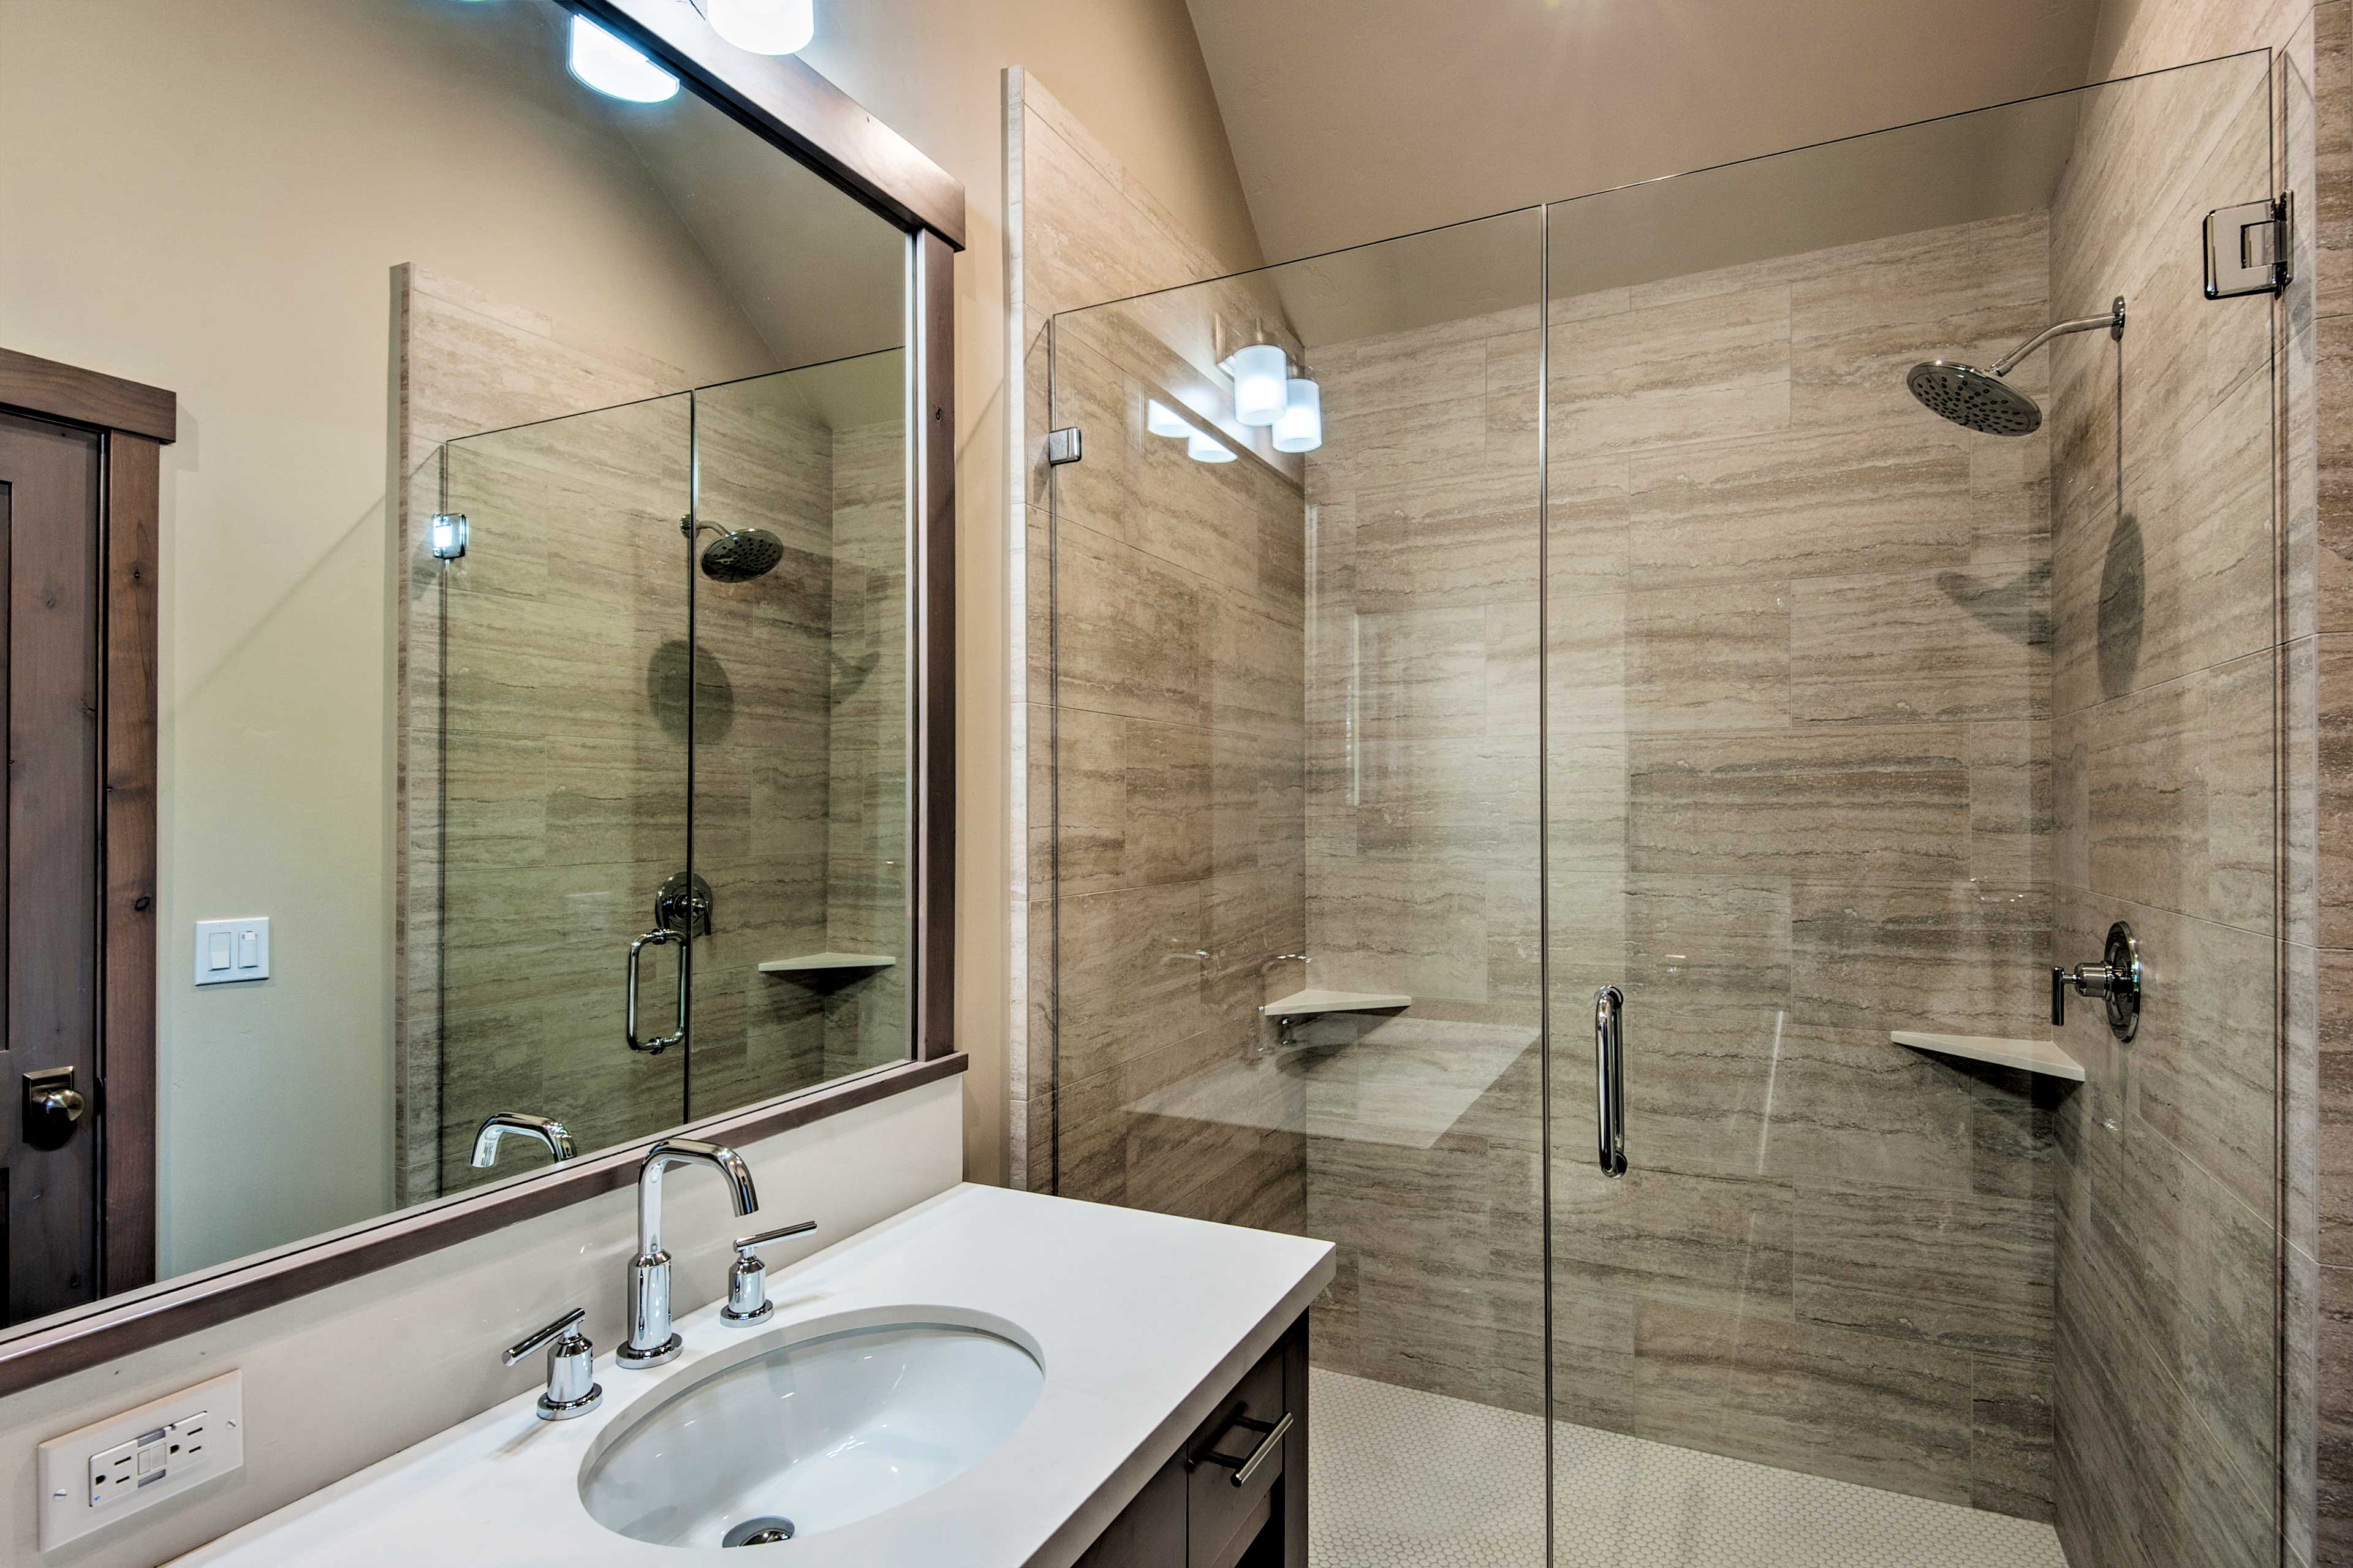 Rinse the day away in the walk-in shower.